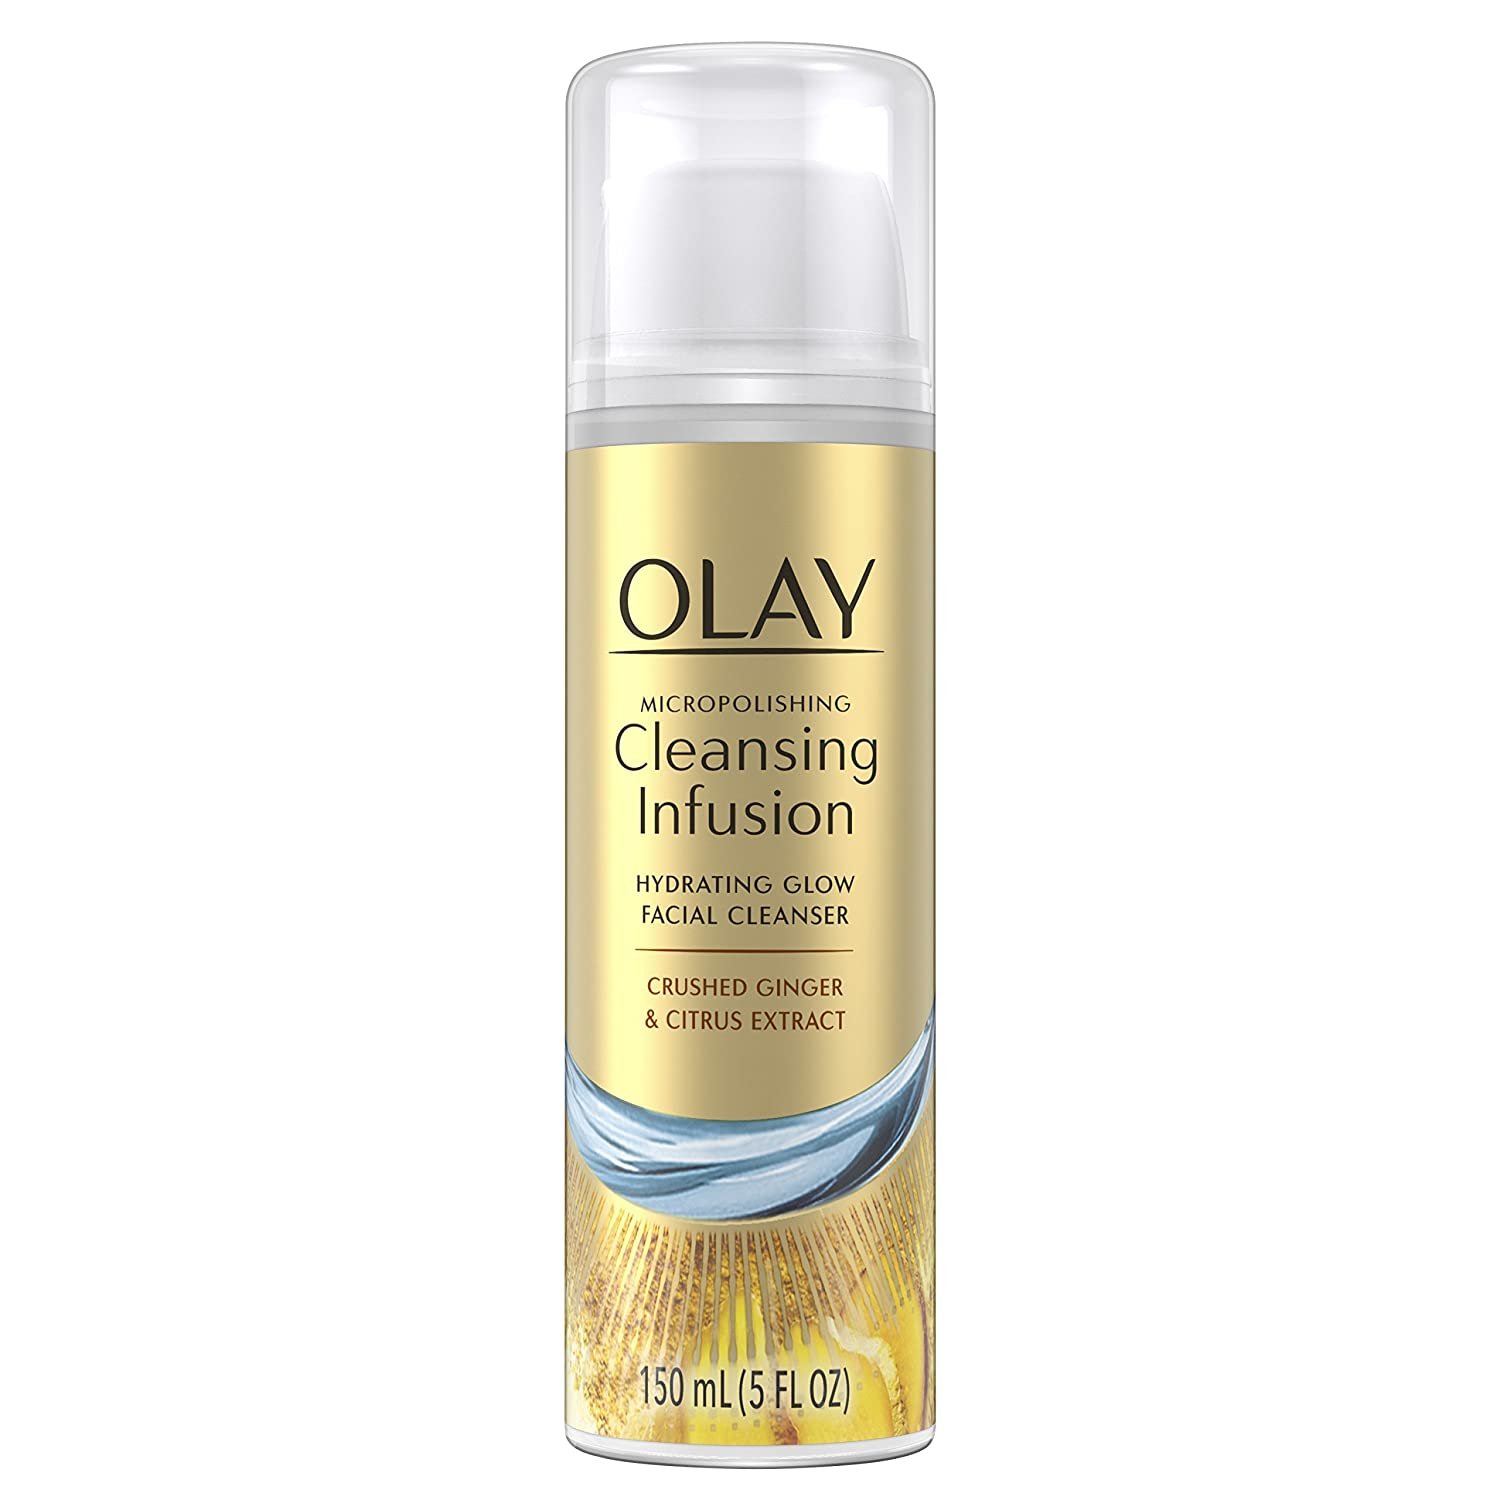 Olay Cleansing Infusion Hydrating Glow Facial Cleanser, Deep Sea Kelp & Aloe Extract, 150 Ml Procter and Gamble